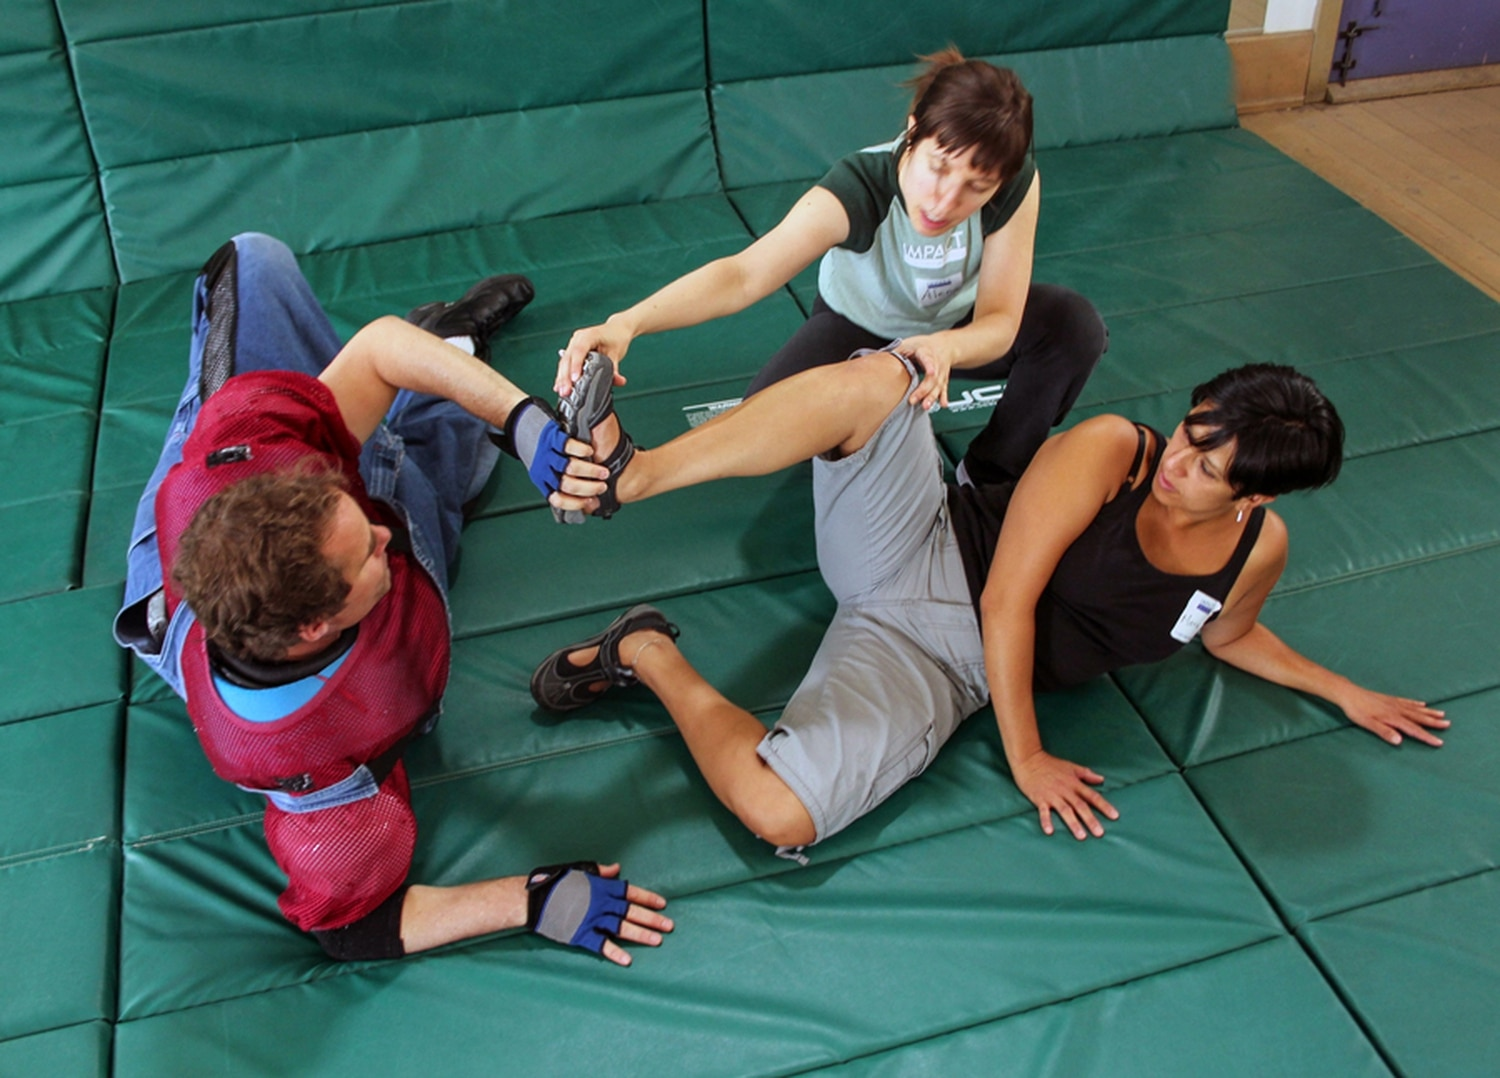 Resolve's empowerment self-defense classes teach students skills to defend themselves physically, yes, but a larger and more nuanced focus is on self-confidence and healthy communities and relationships of all types.